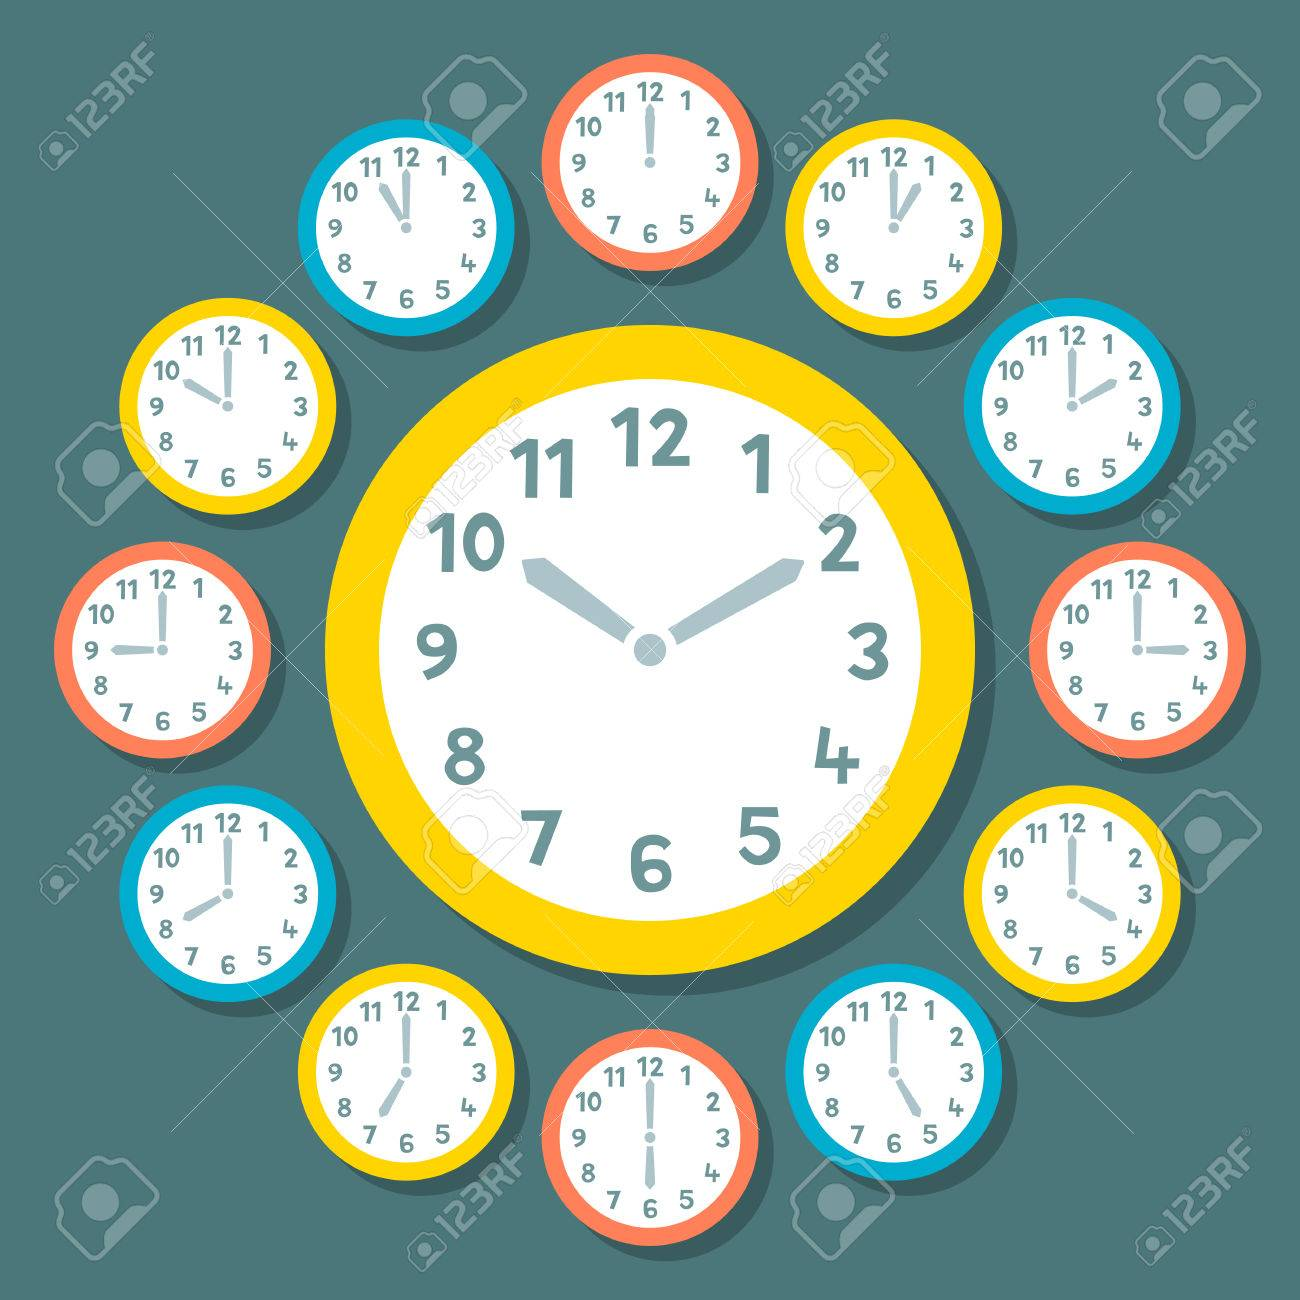 Retro Vector Clocks Showing All 12 Hours Stock Vector - 34338094